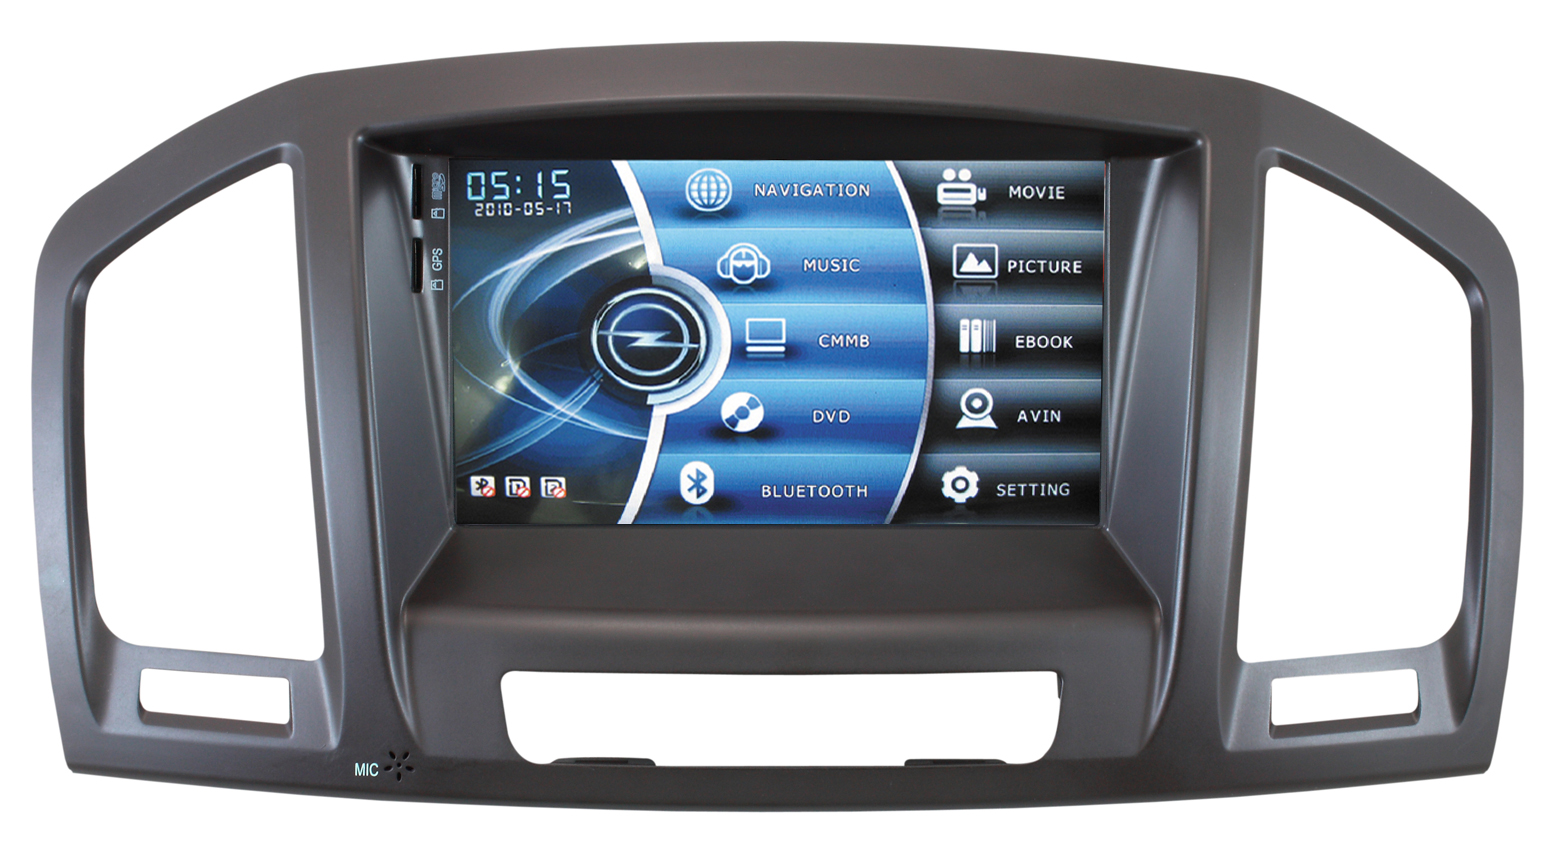 Autoradio AGW92 GPS WIFI DVD CD Bluetooth USB SD pour OPEL Insignia (Android 9.0 processeur 2GHZ)